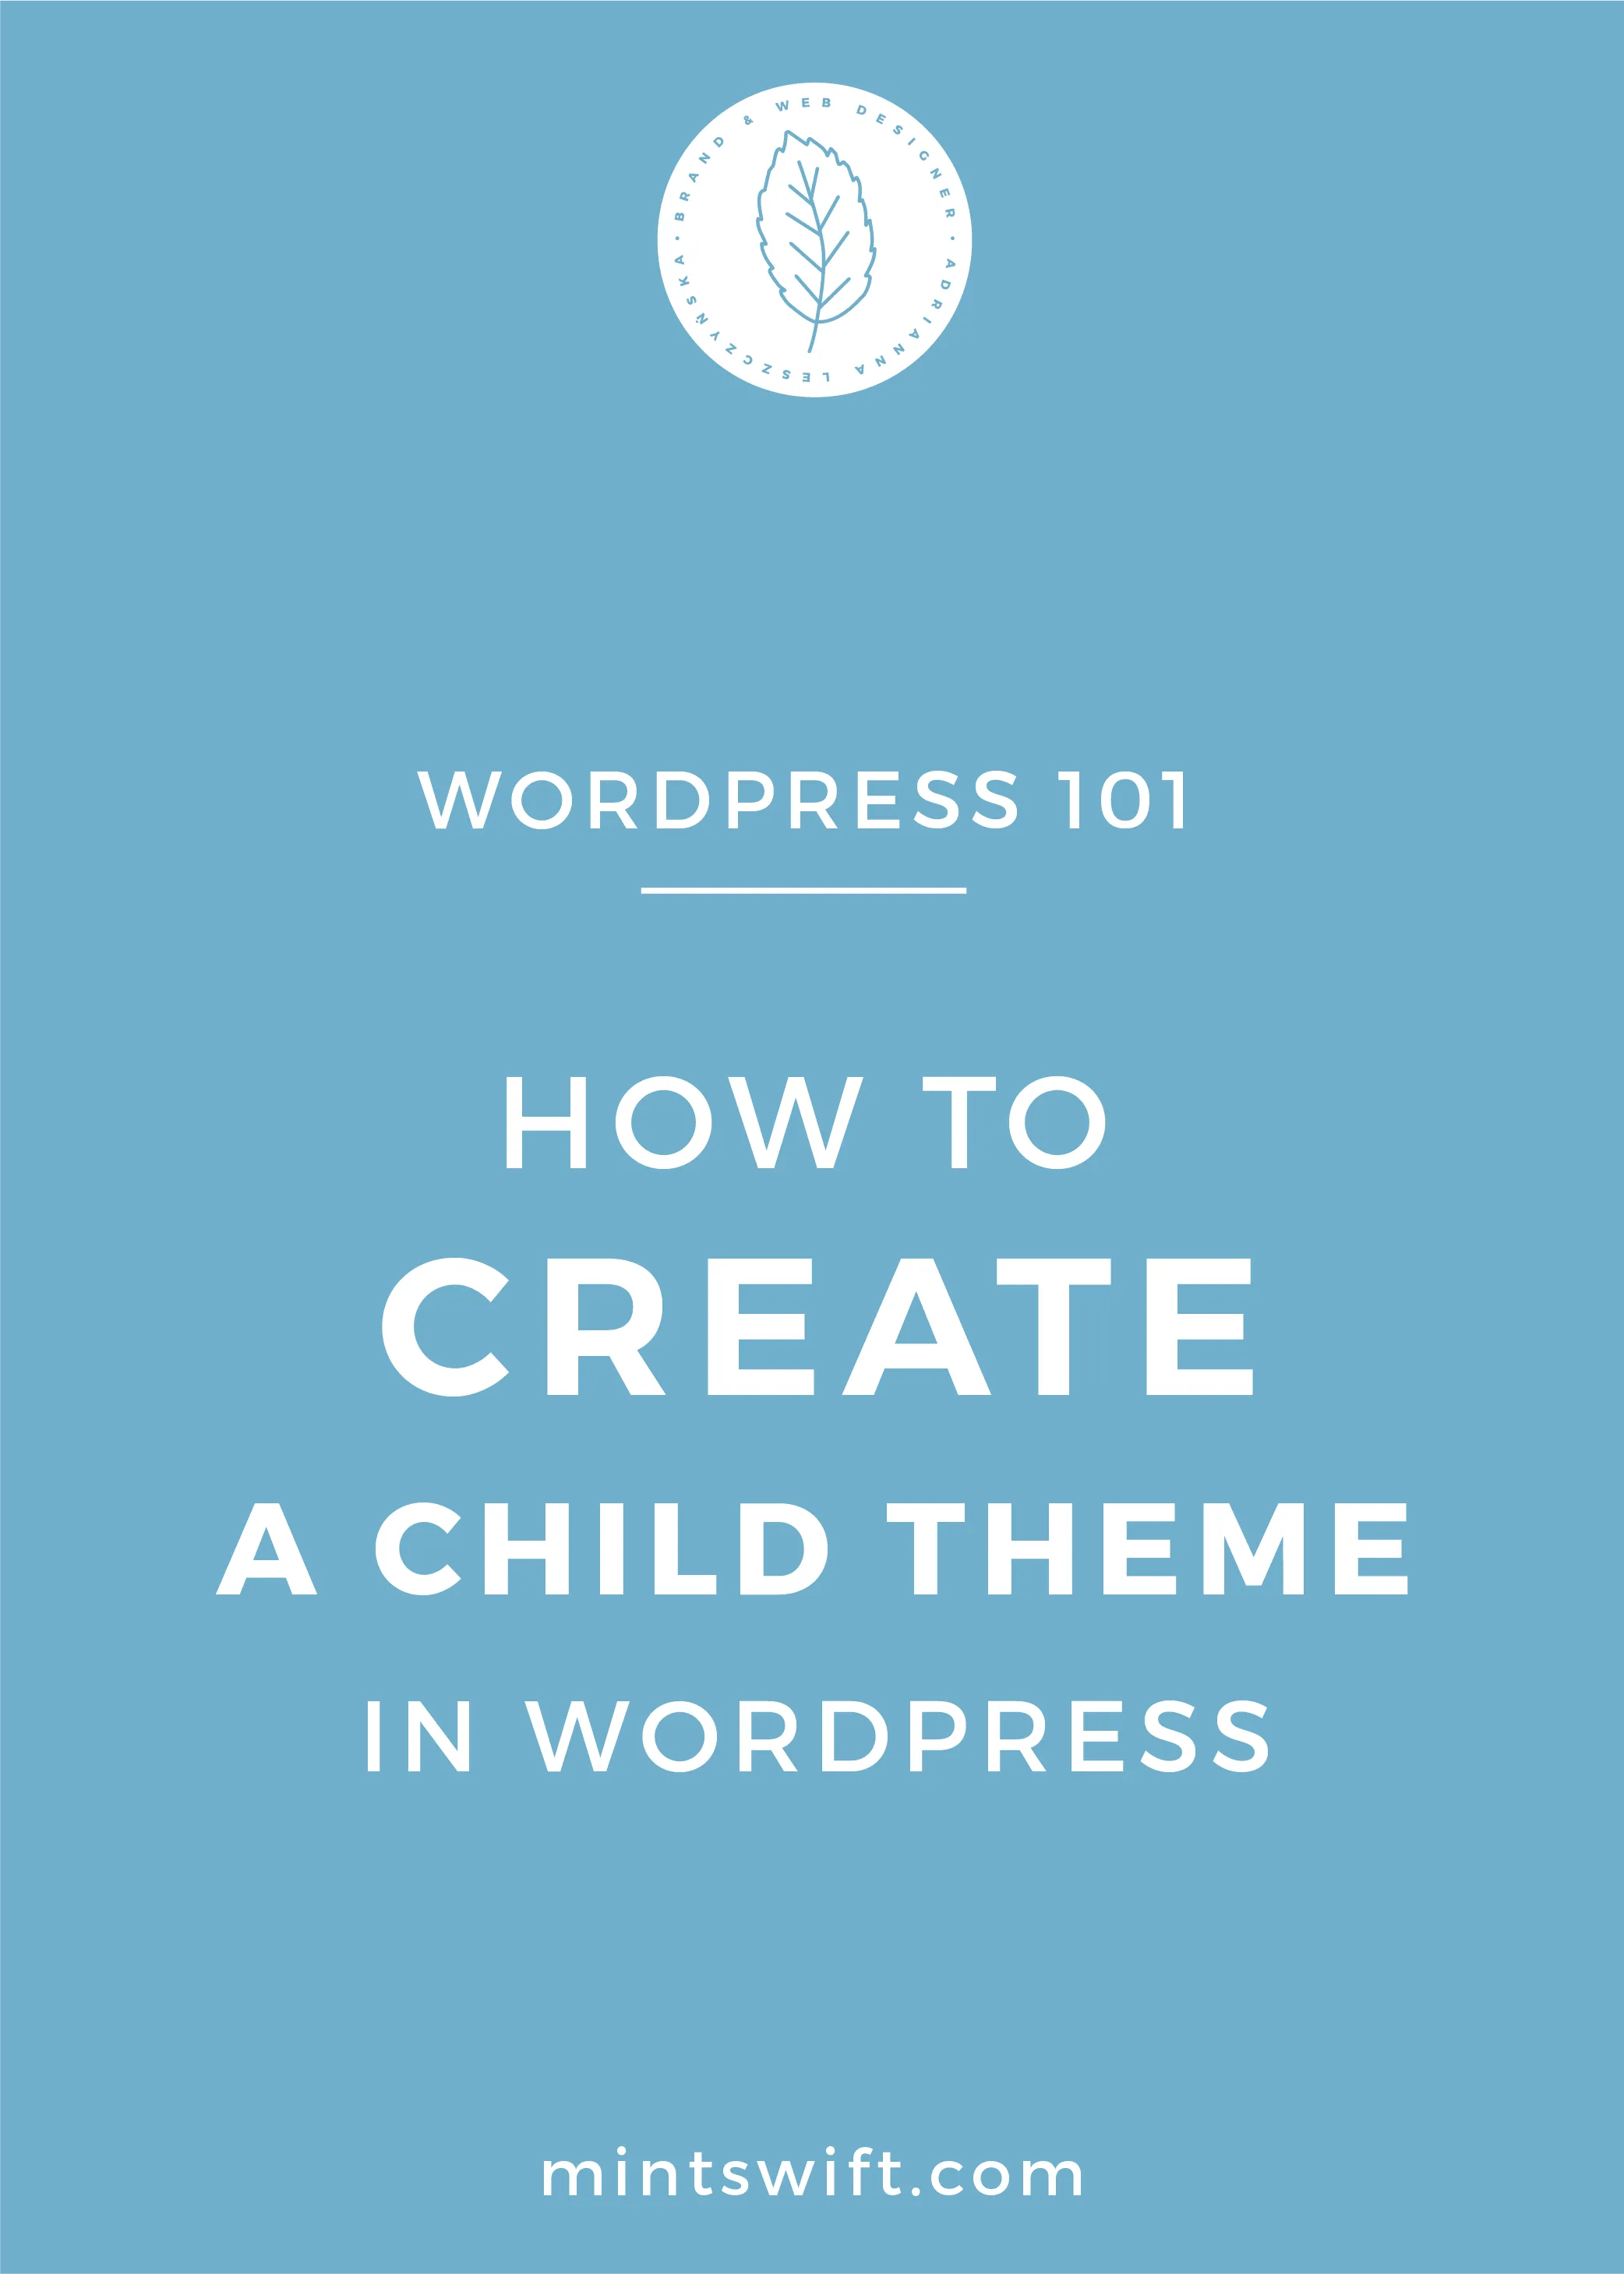 How To Create a Child Theme in WordPress - MintSwift